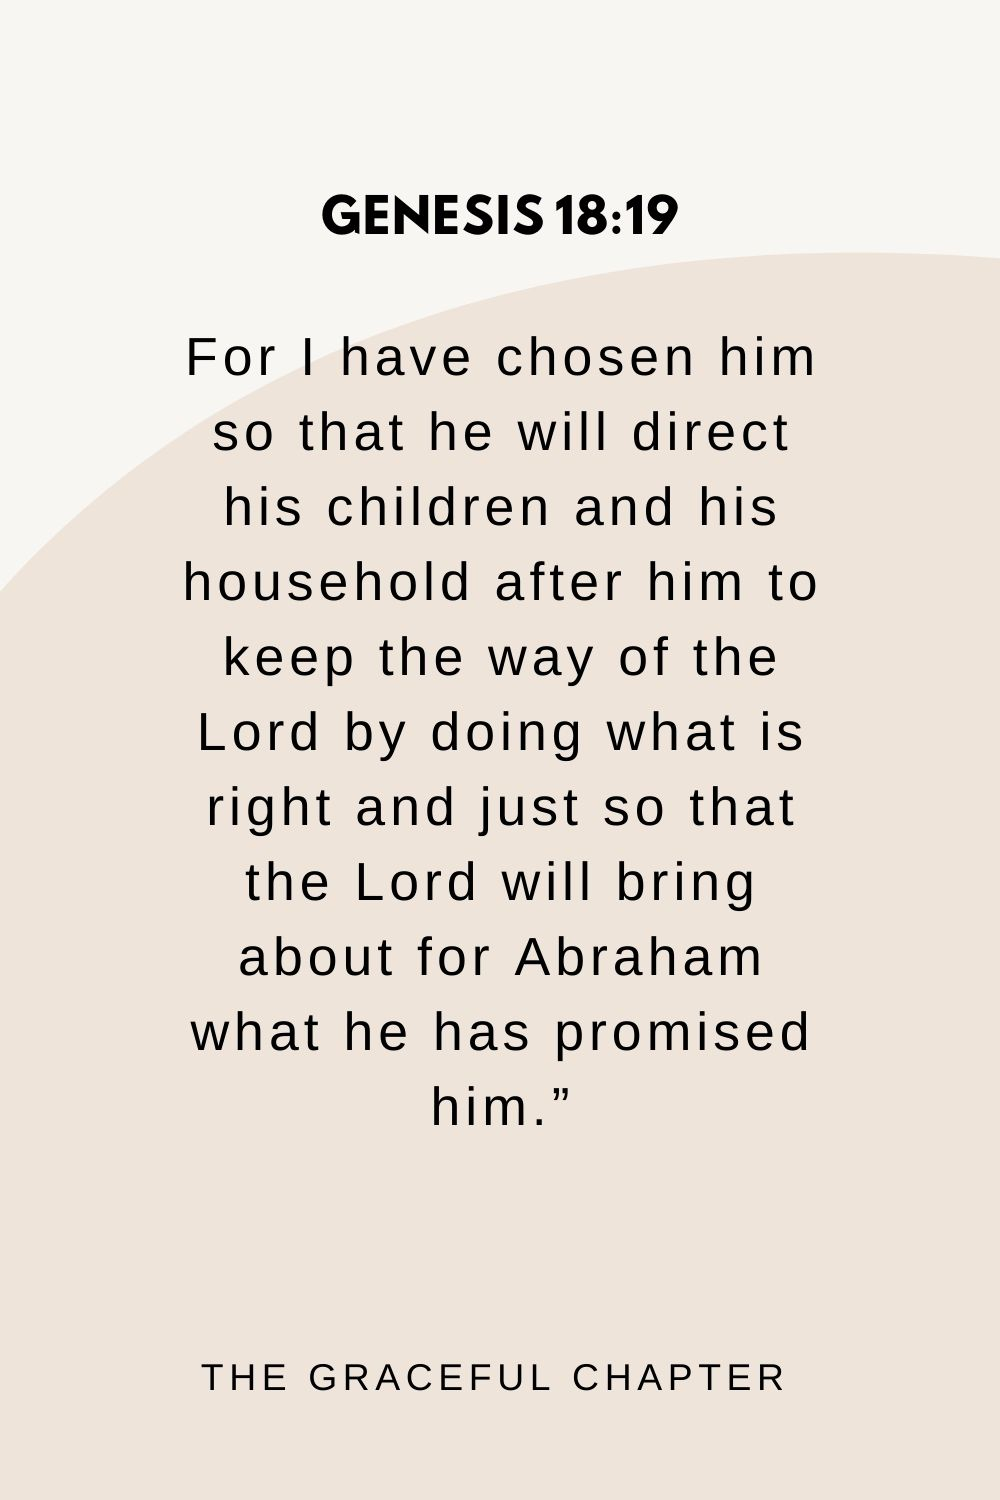 """For I have chosen him so that he will direct his children and his household after him to keep the way of the Lord by doing what is right and just so that the Lord will bring about for Abraham what he has promised him."""" Genesis 18:19"""